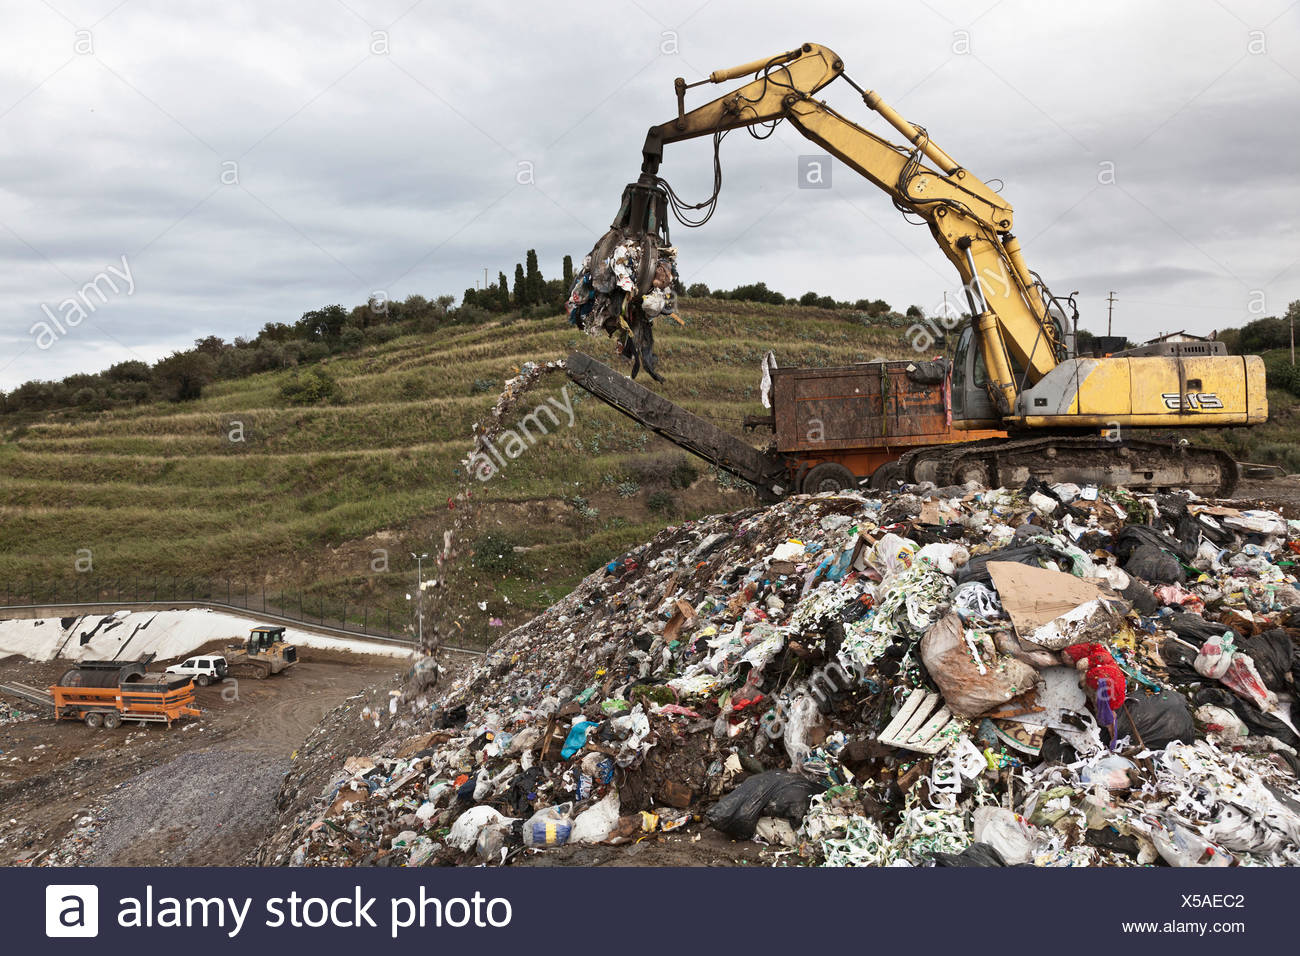 Crane at garbage collection center - Stock Image